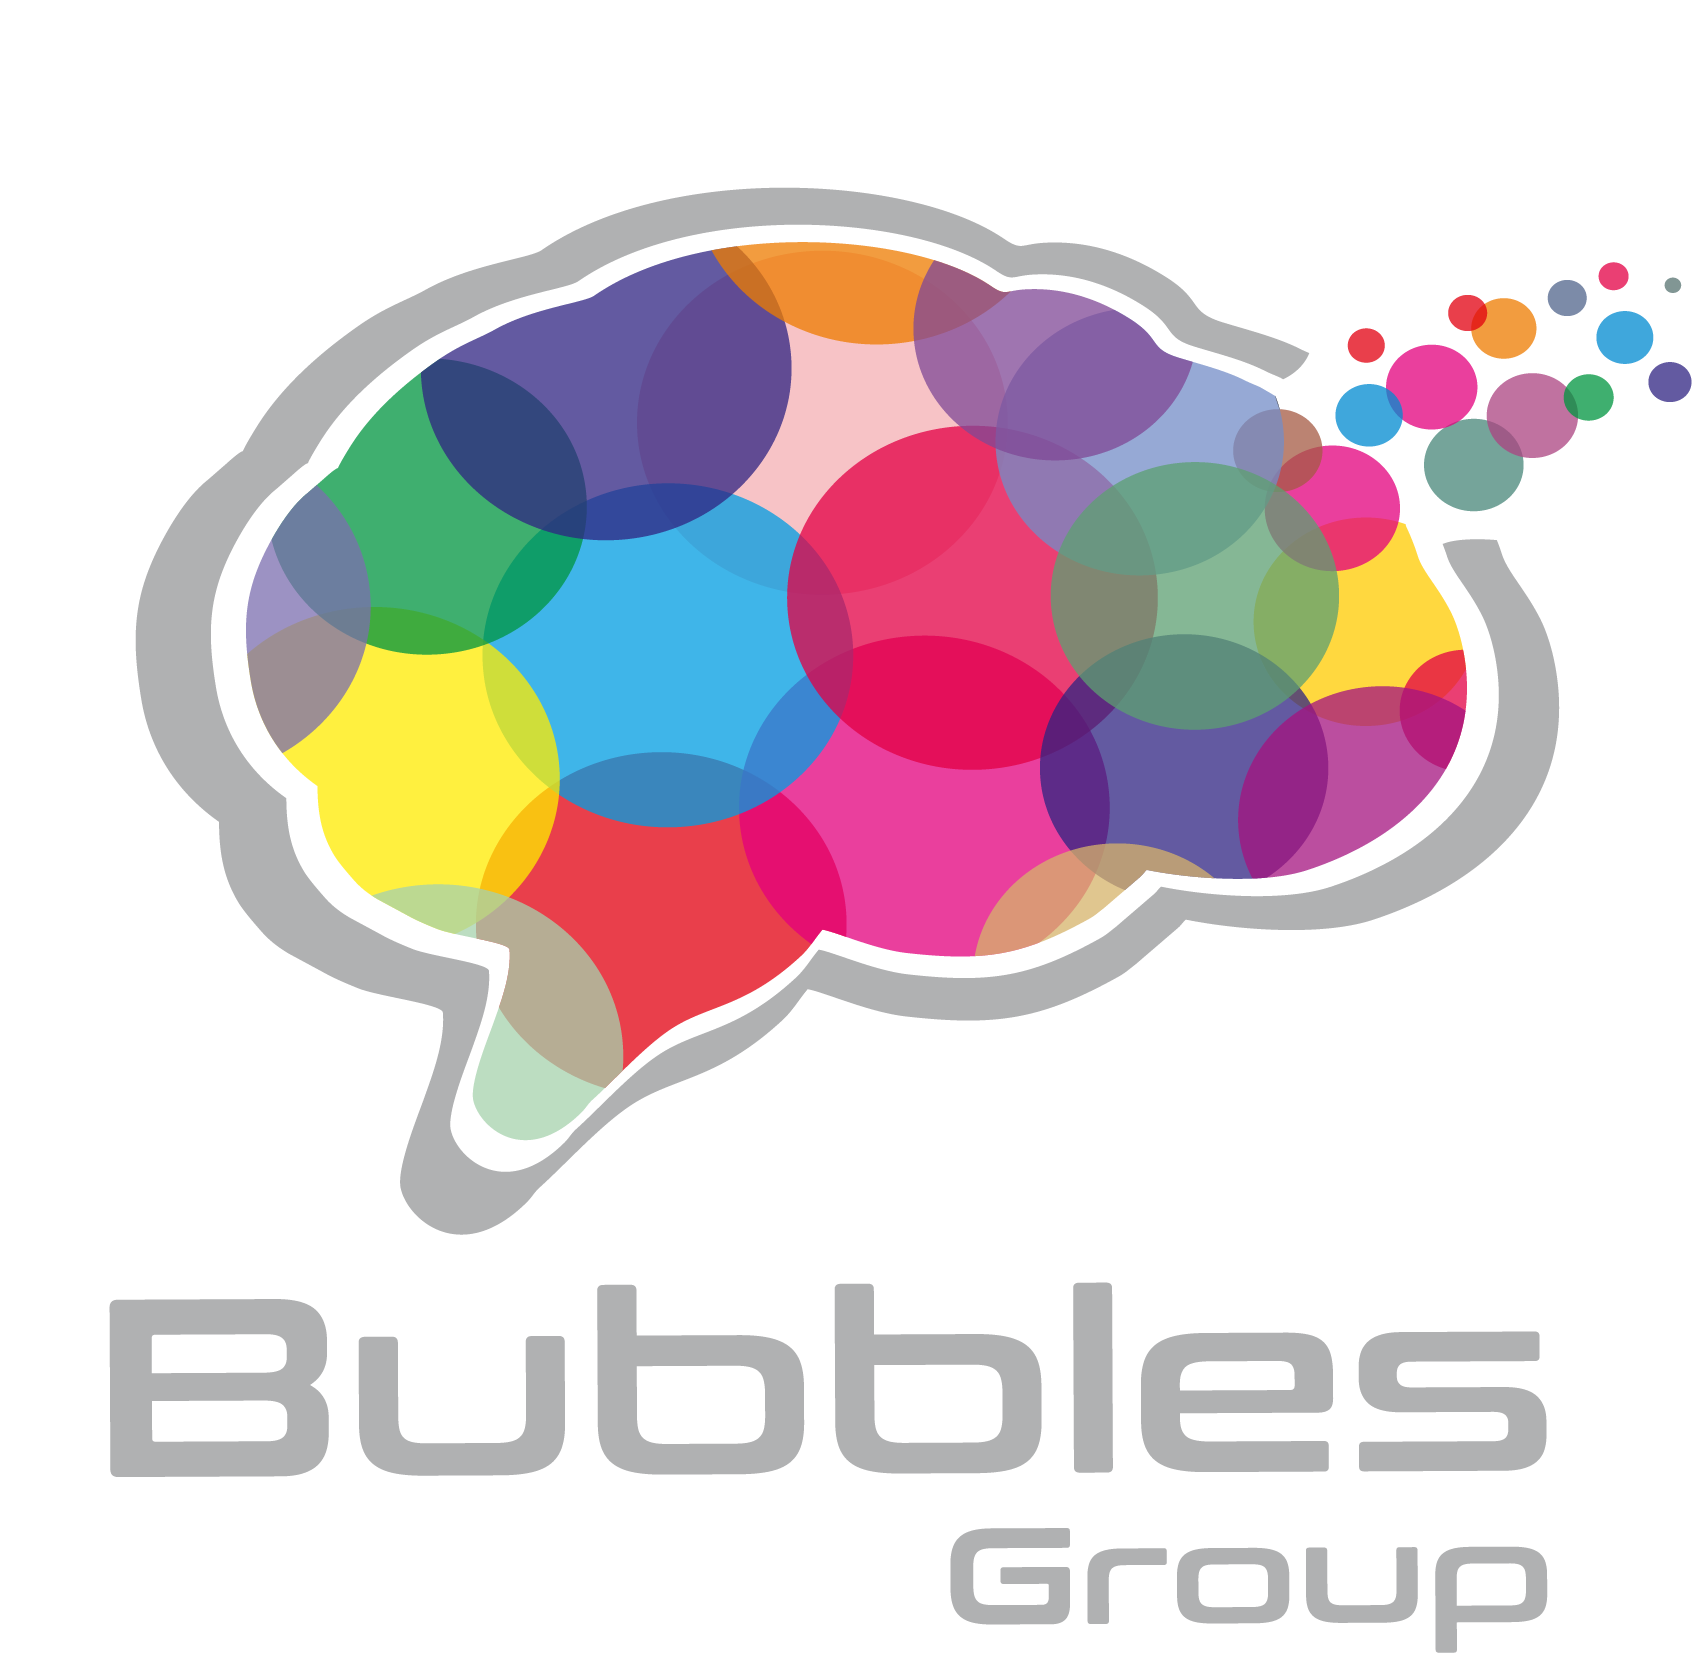 Bubbles Group